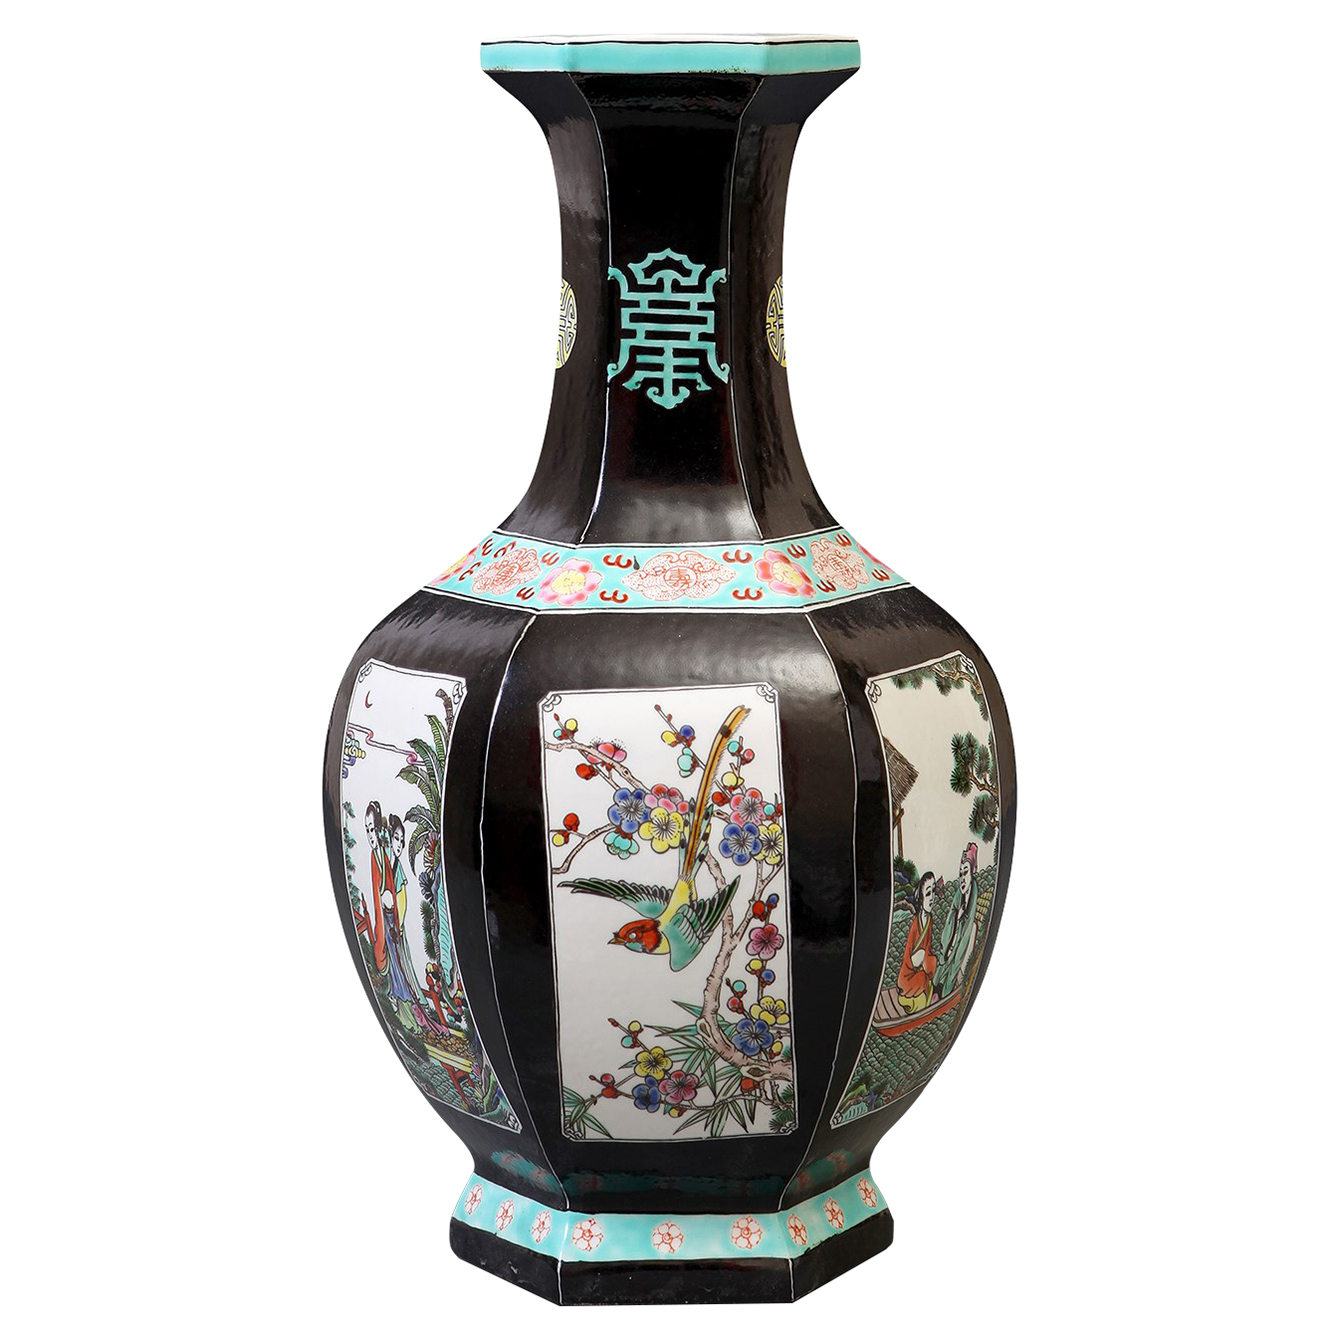 Jing Global Chinese Vignette Black Hexagon Base Porcelain Vase